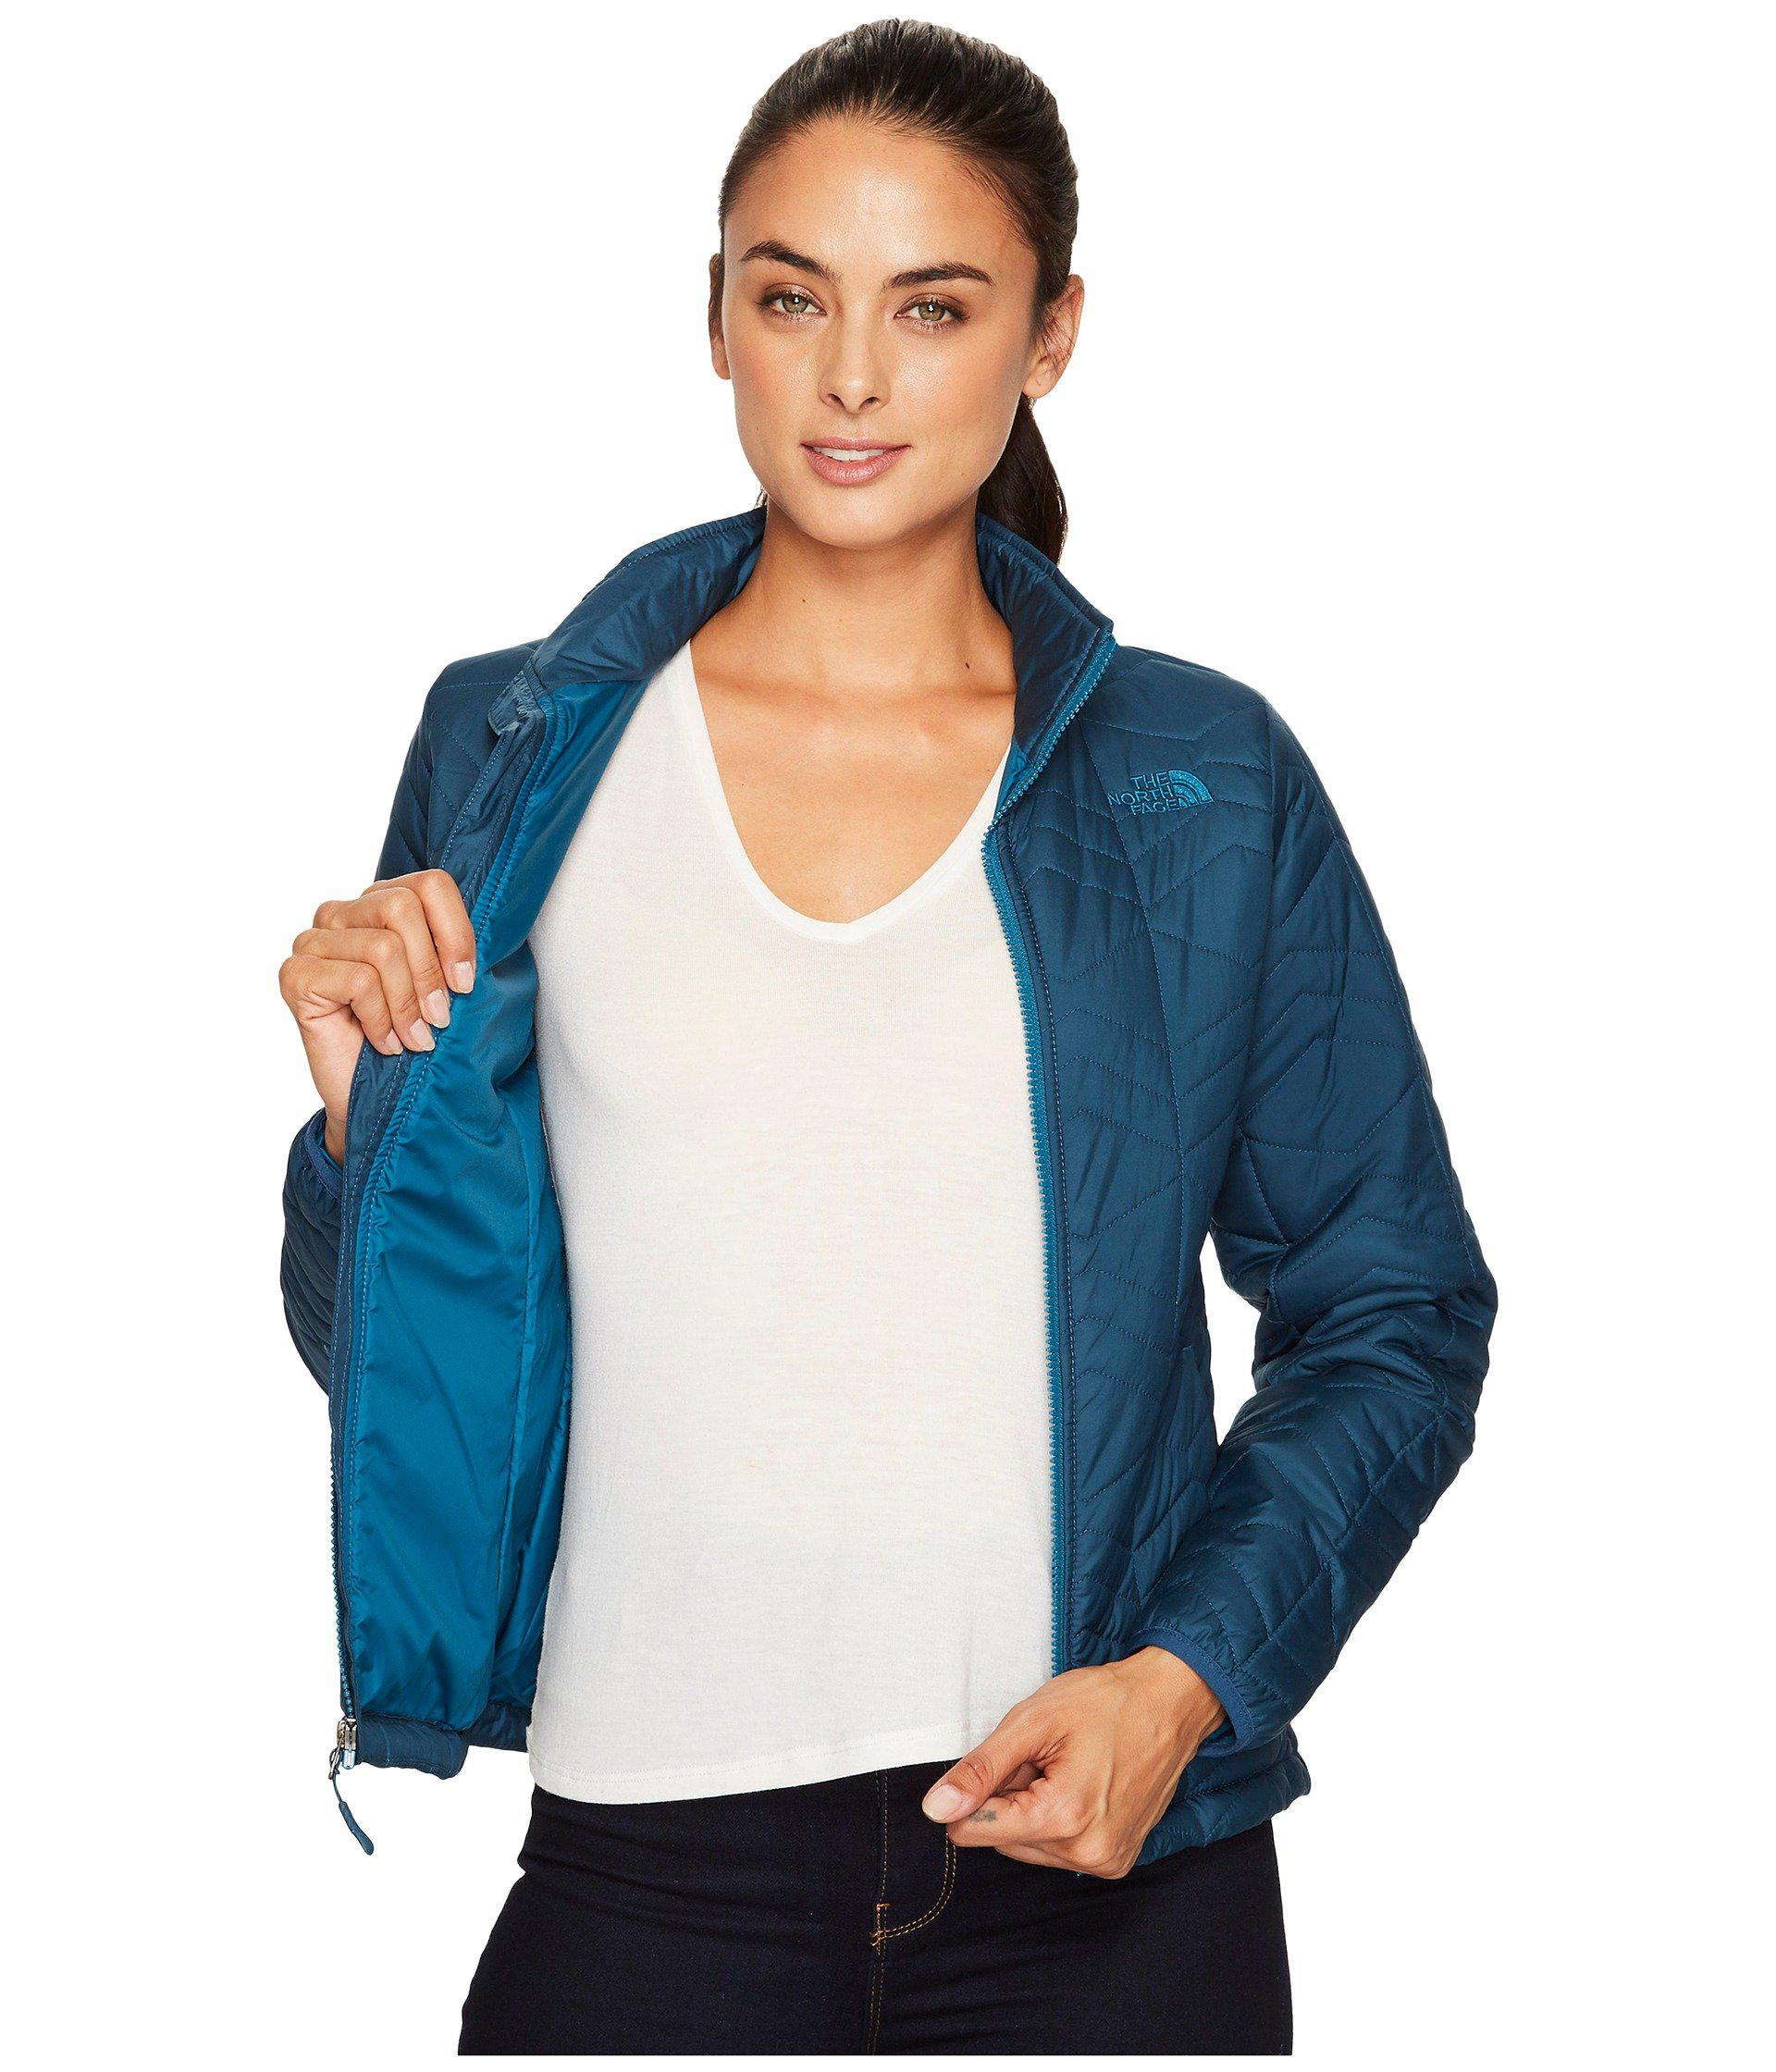 c900694b0cb1 Lyst - The North Face Bombay Jacket in Blue